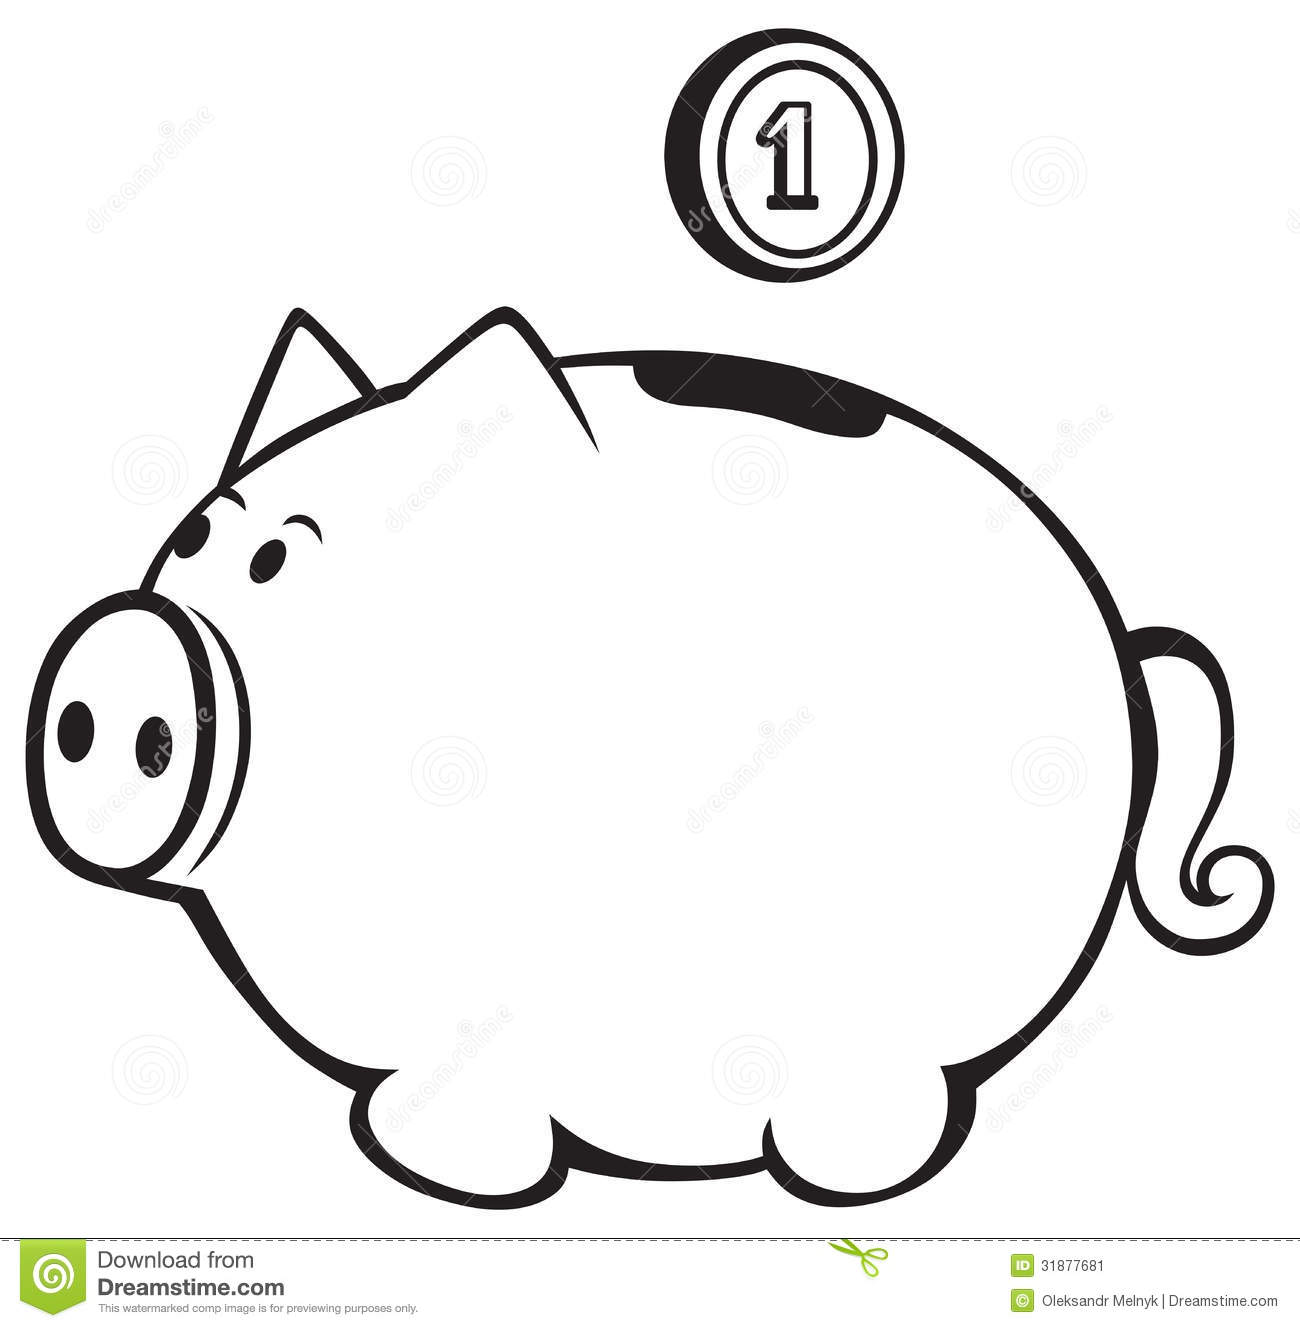 Piggy bank clip art black and white clipart panda free clipart images for Piggy bank templates